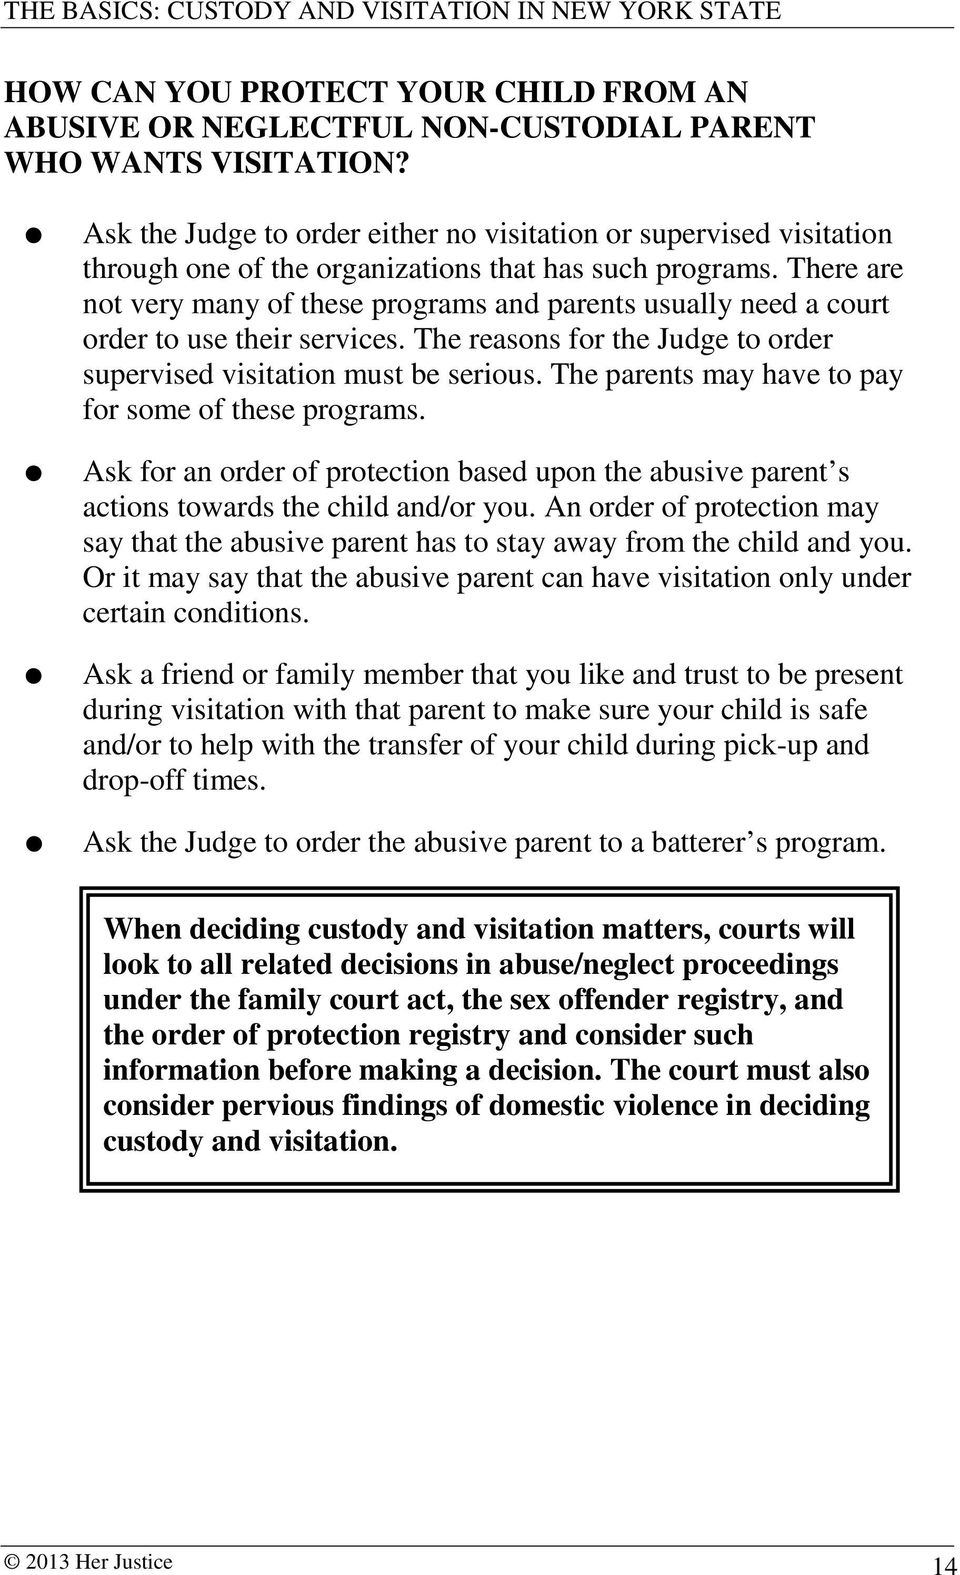 There are not very many of these programs and parents usually need a court order to use their services. The reasons for the Judge to order supervised visitation must be serious.